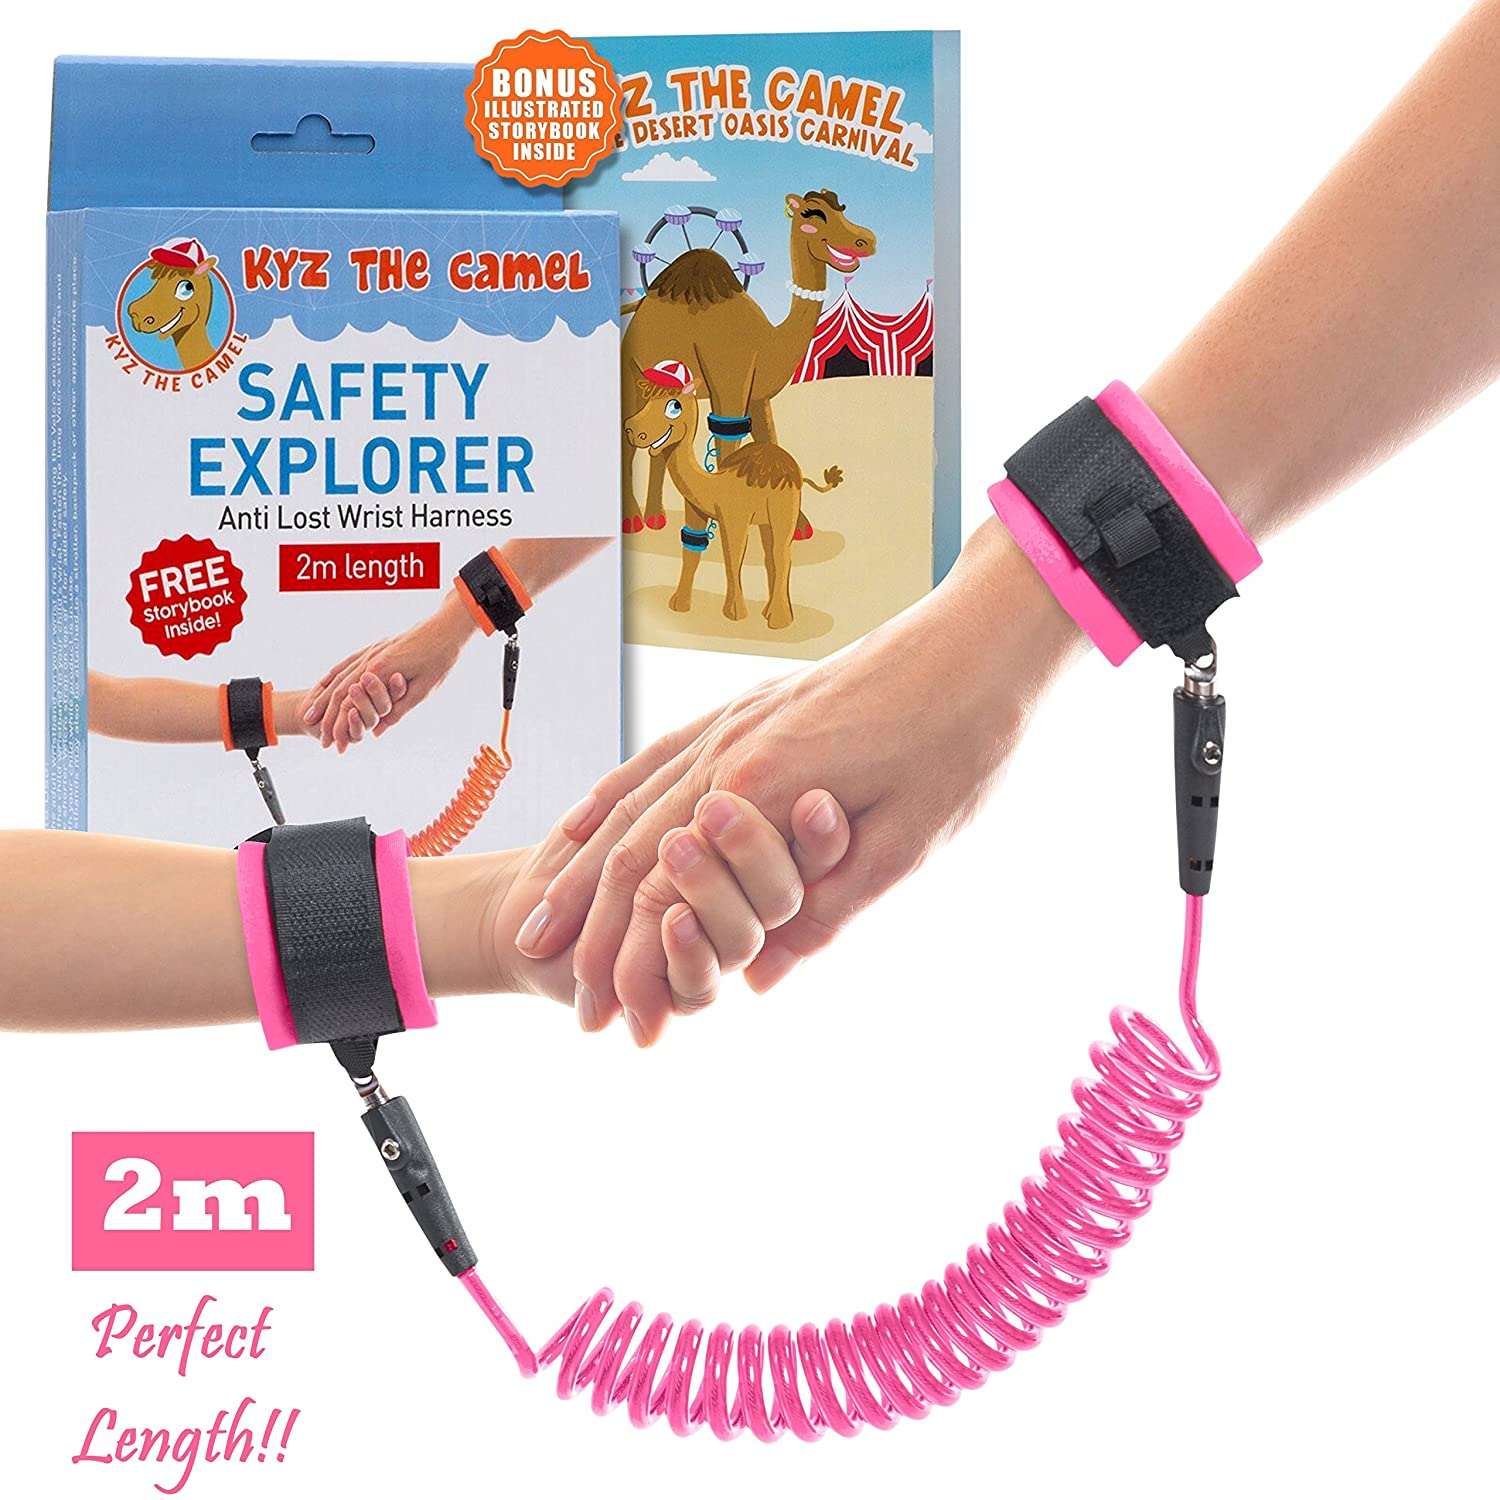 NimbusKids Toddler Leash Child Anti Lost Harness Wrist Link: With Double Velcro Wrist band and No-Cut Chain for Maximum Security – Comfy Wrist Straps Rotate 360 – Keep Kids Nearby – 2m Length – Baby Safety